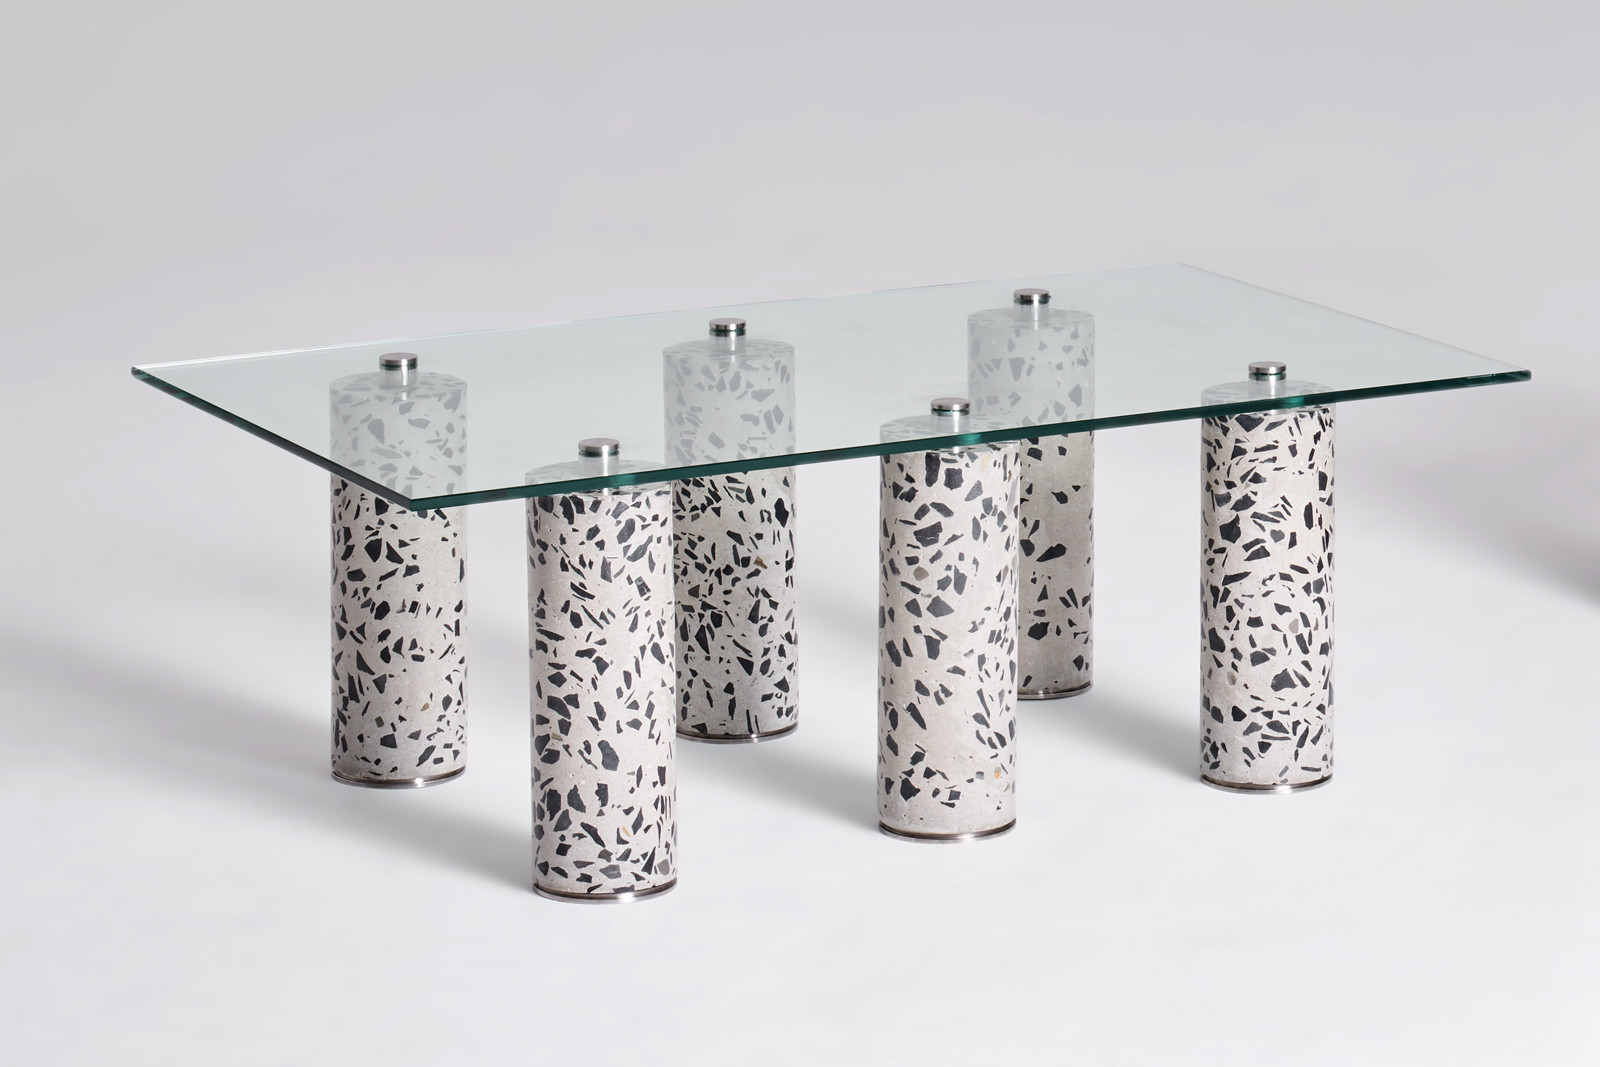 Contemporary coffee table 6, 2019. Limited edition 126cm (L) x 74cm (W) x 45cm (H) Concrete, Stainless Steel, Glass. © Oliver Whyte.